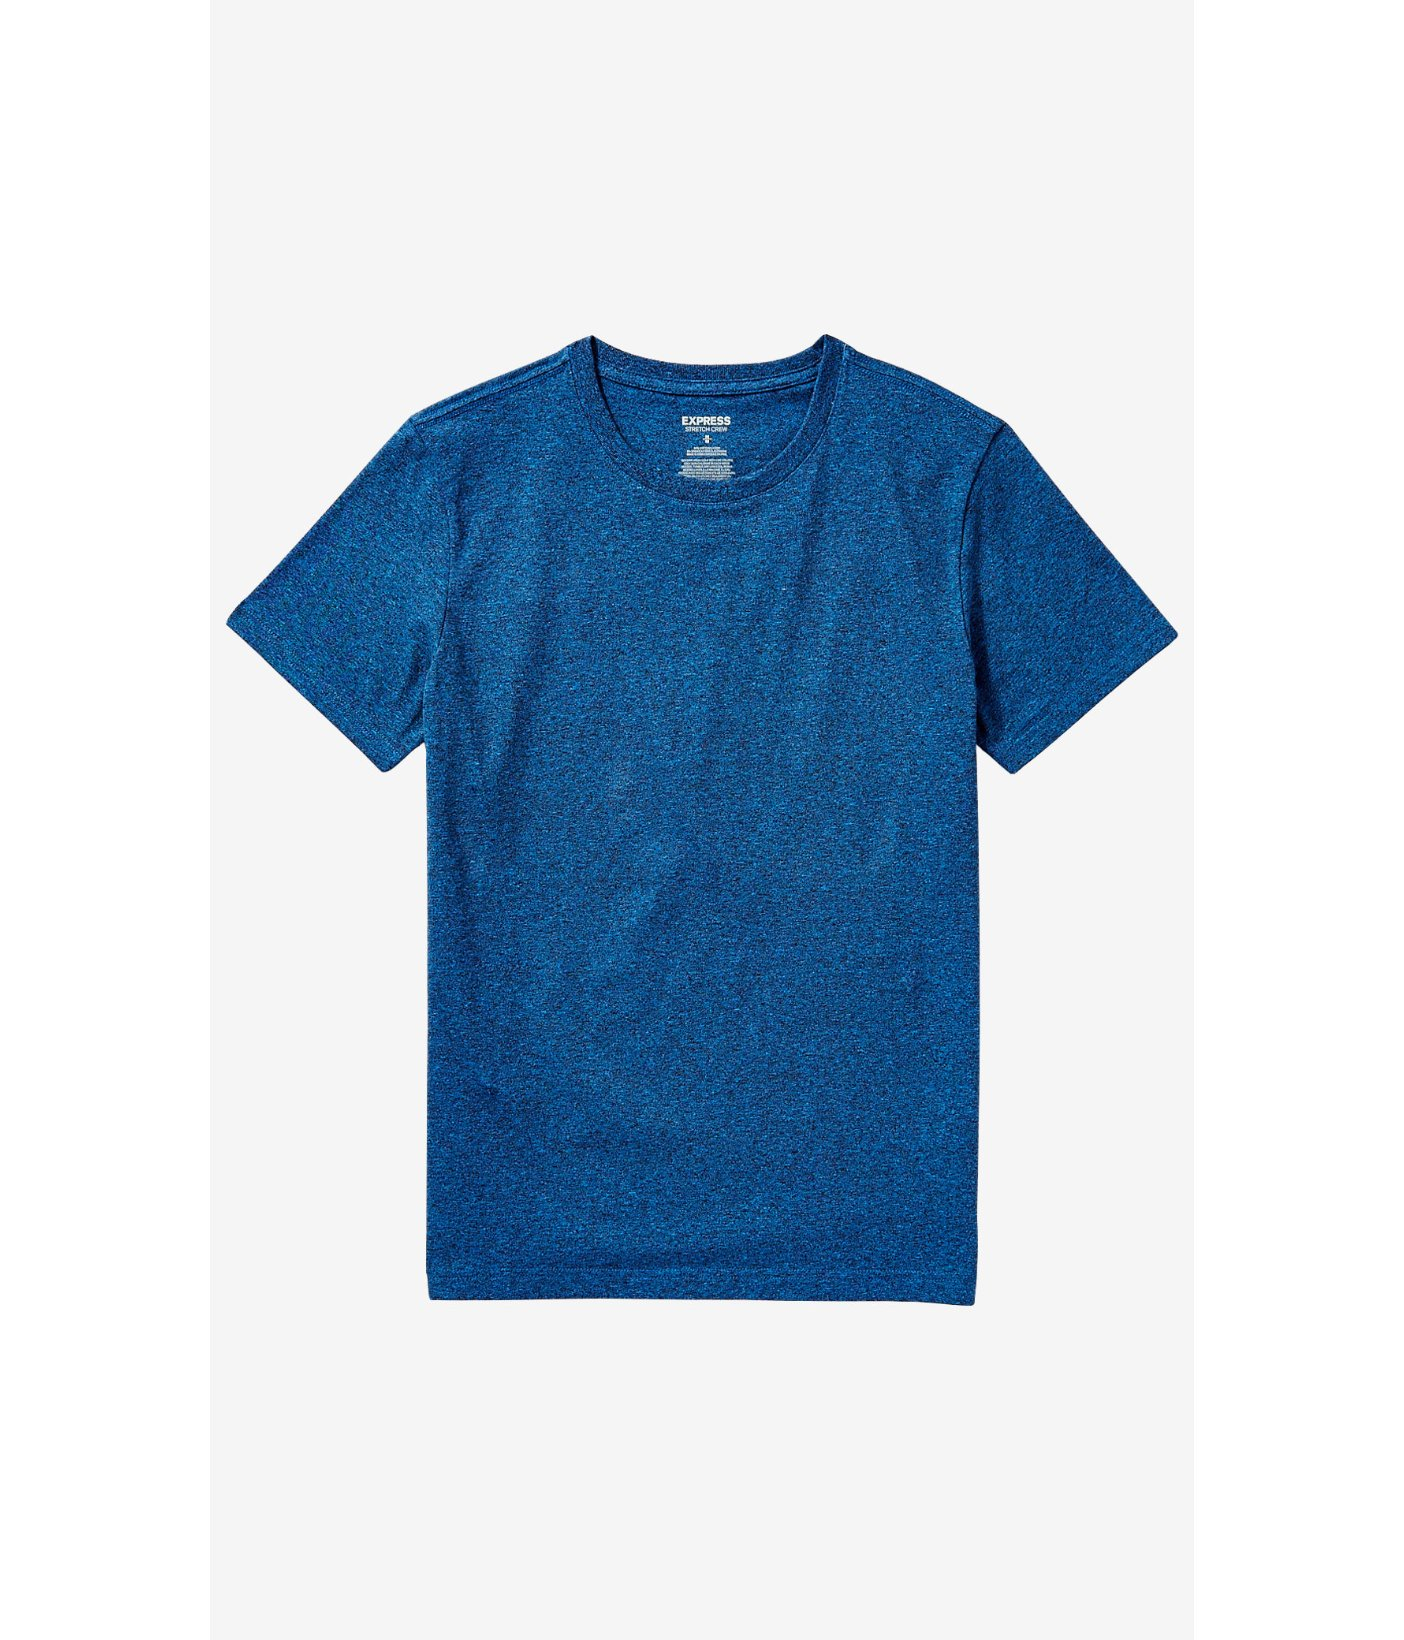 Express Heathered Stretch Cotton Crew Neck Tee In Blue For